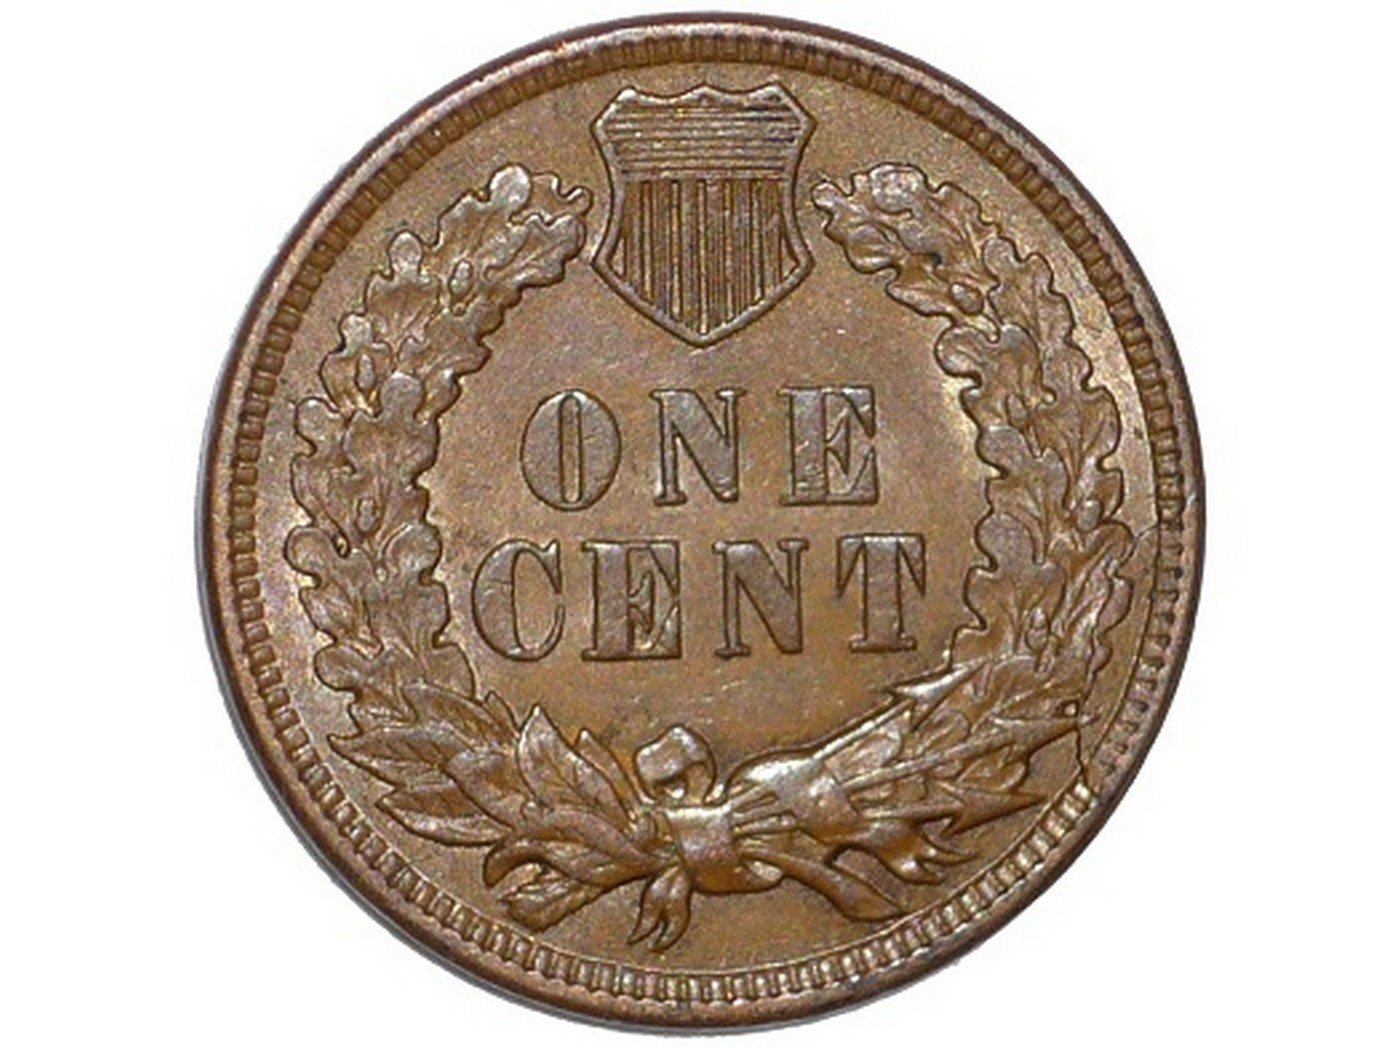 1906 CUD-001 - Indian Head Penny - Photo by David Poliquin